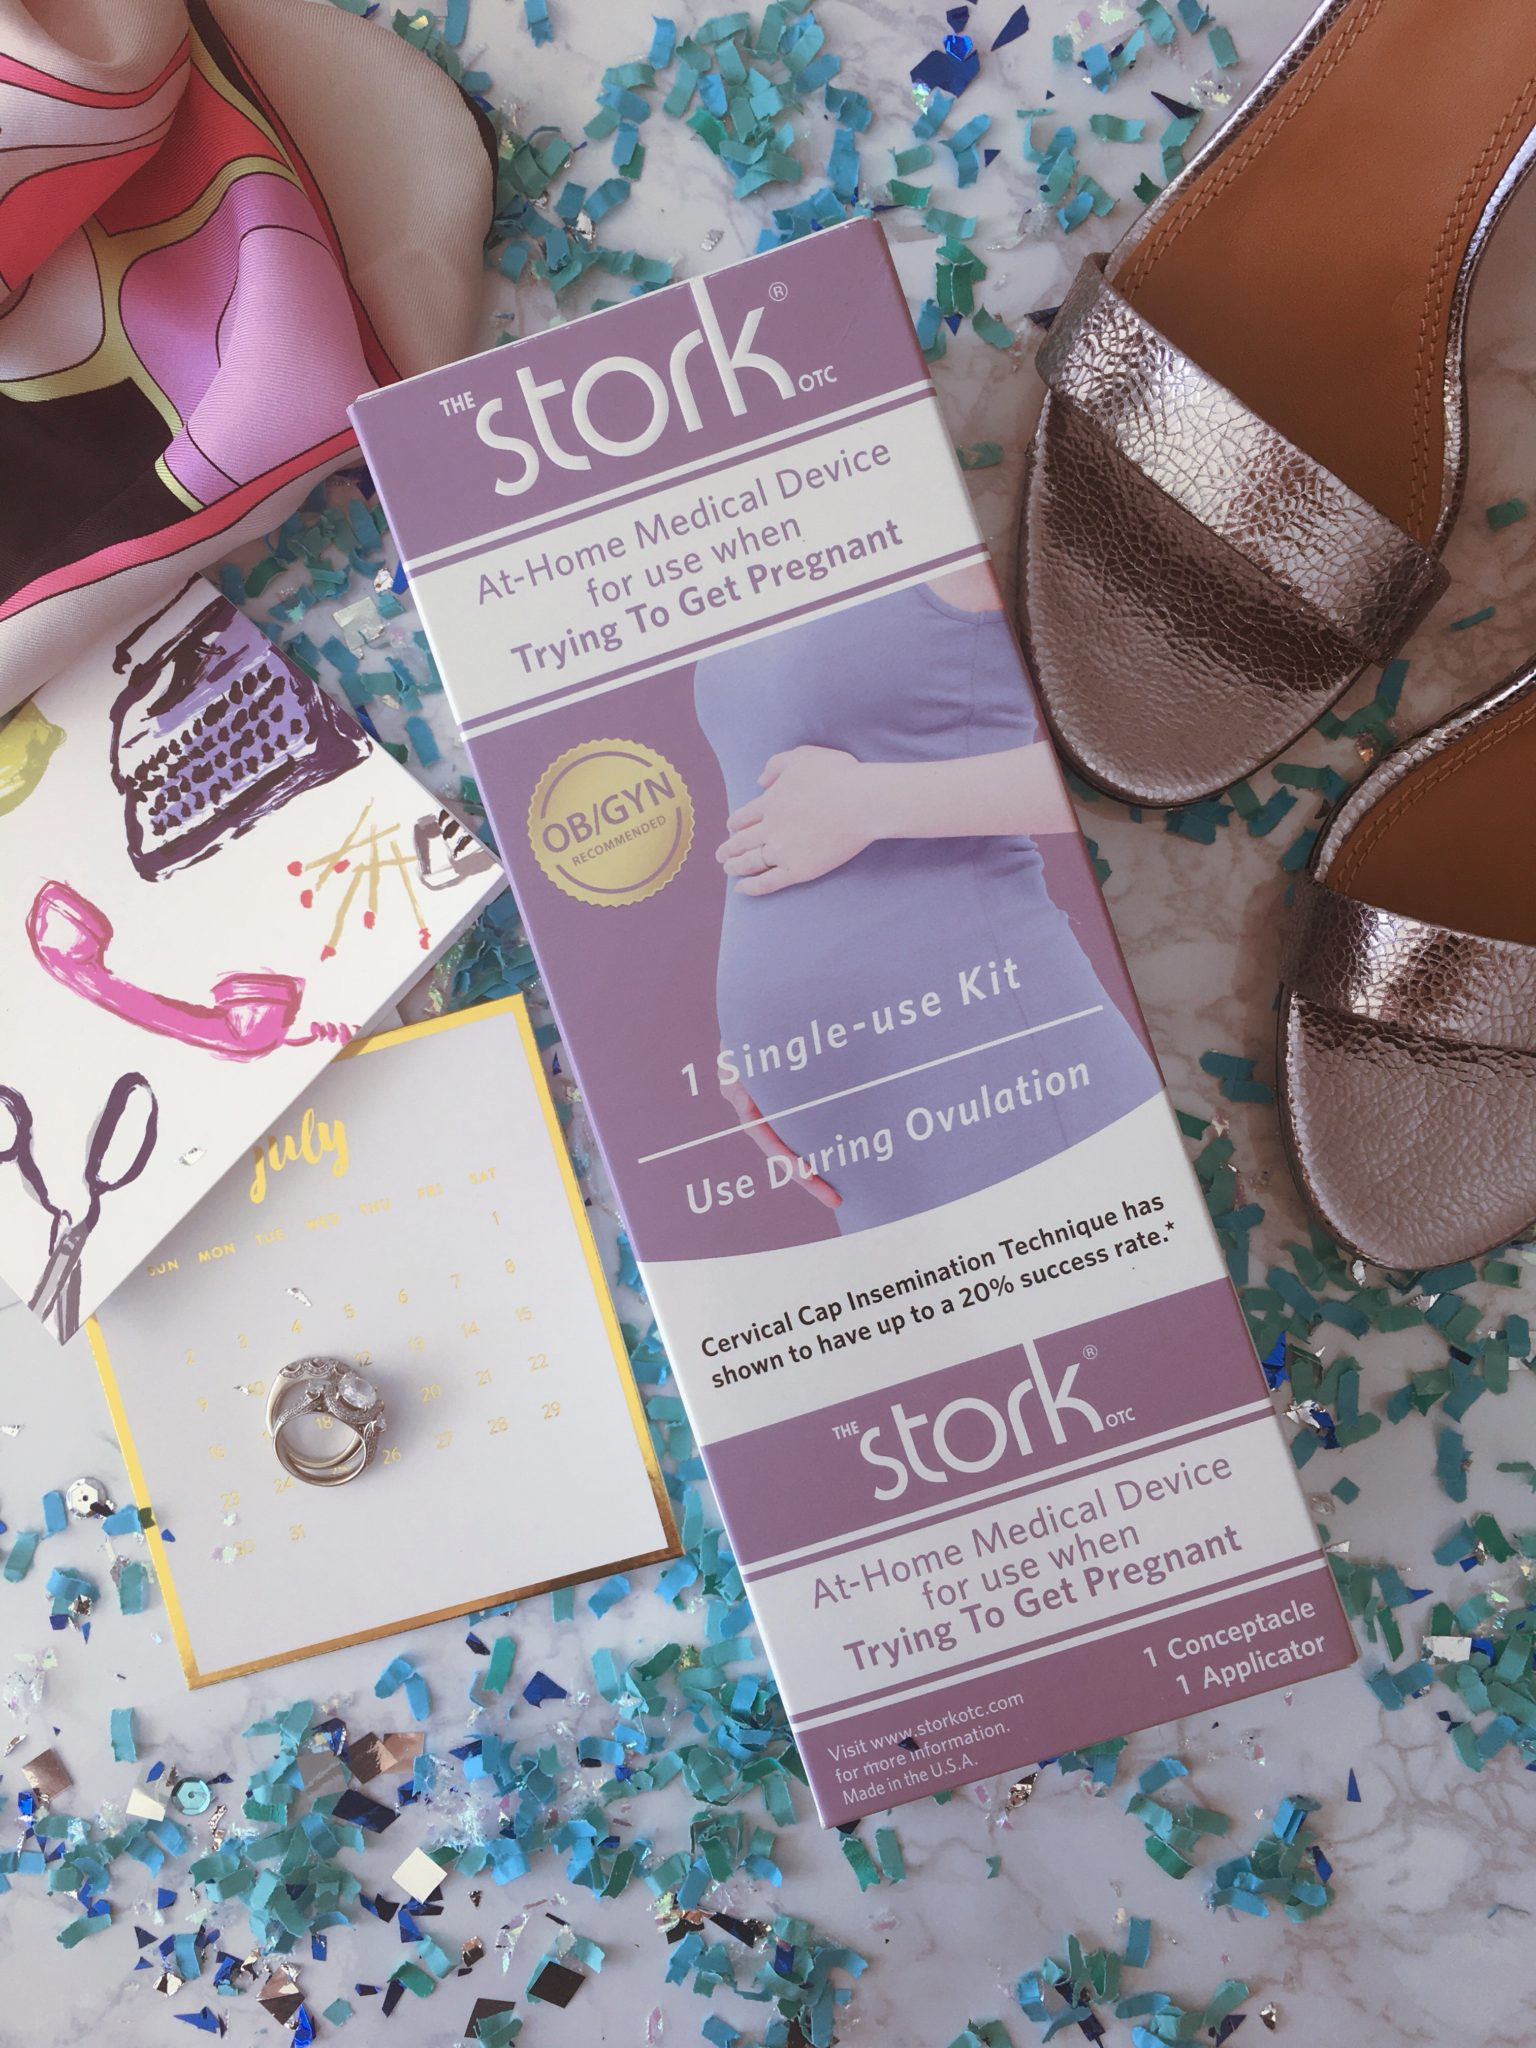 Modern Love With The Stork Otc The Stork Conception Aid